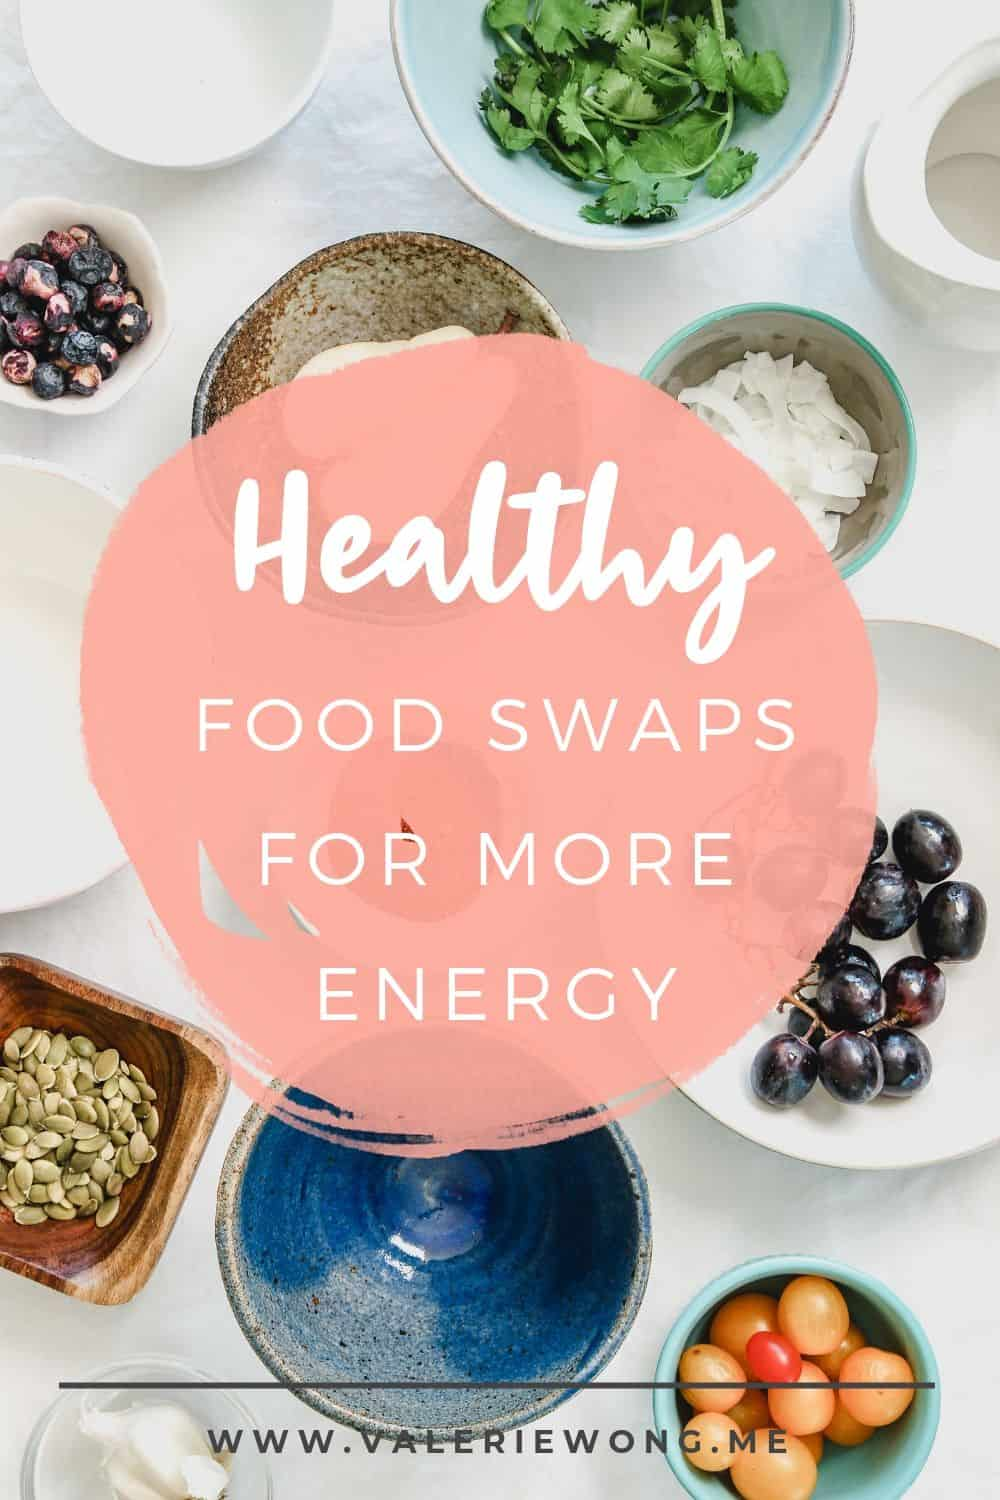 Healthy food swaps for more energy | If you need more energy throughout the day, clean eating is a great place to start. In this post, I'll help you clean up your diet with a pantry & fridge makeover! Learn which foods need to go and how to replace them with healthier alternatives. Click to read the post + get your free healthy food swaps checklist to make the process super easy! | Valerie Wong Wellness #valeriewong #healthyfoodwaps #cleaneating #healthyeating #wellnesstips